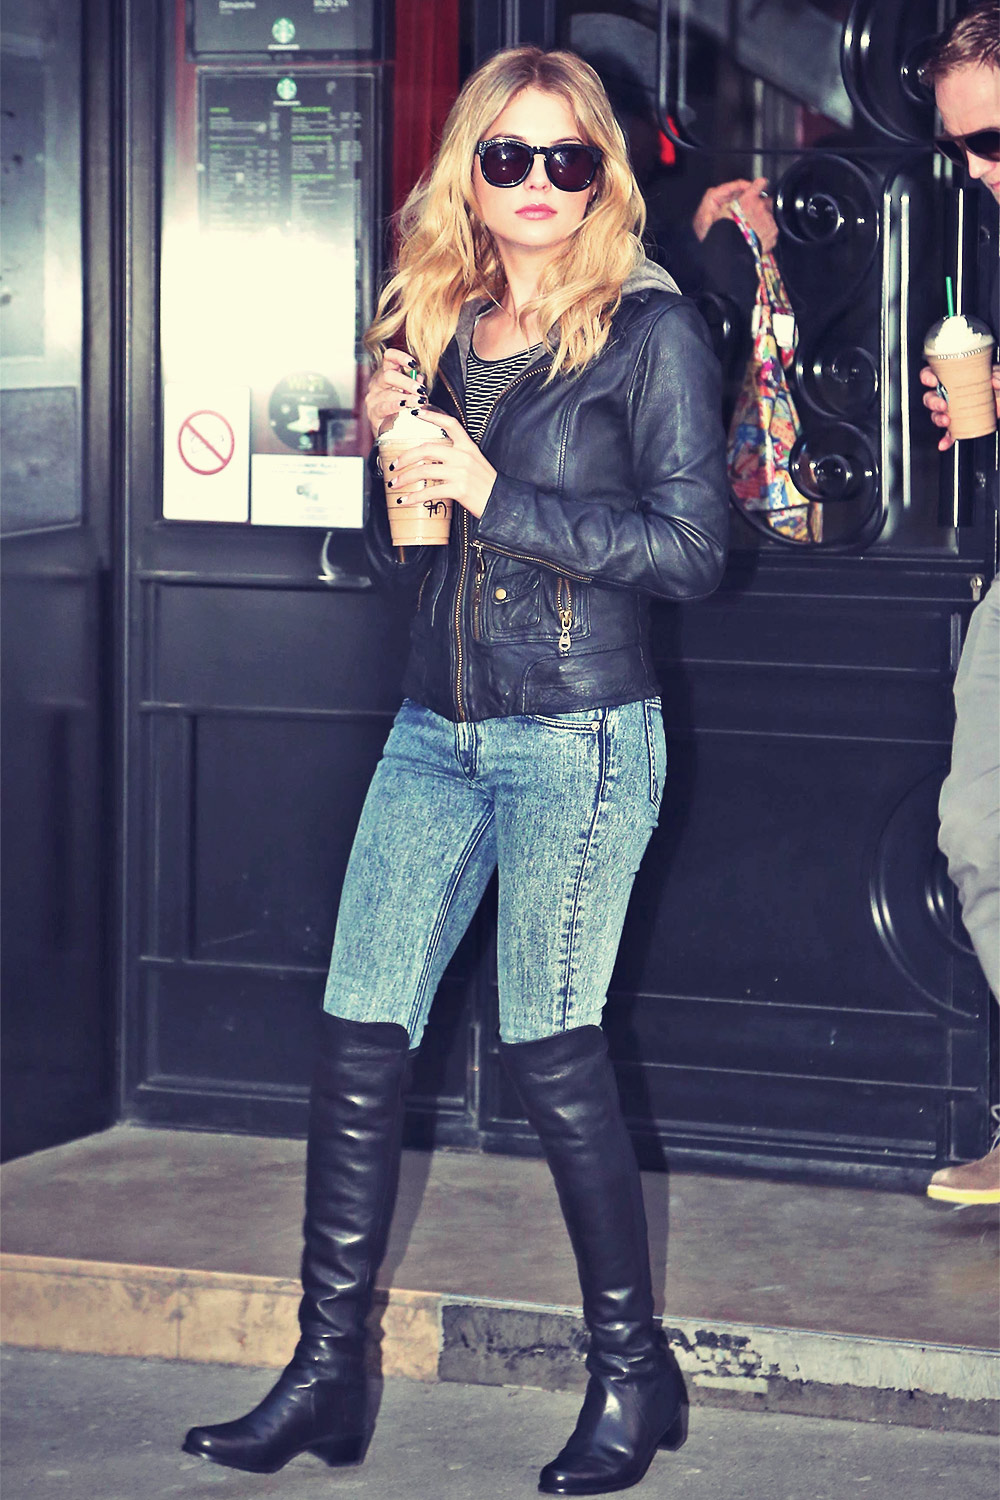 Ashley Benson out and about in Paris